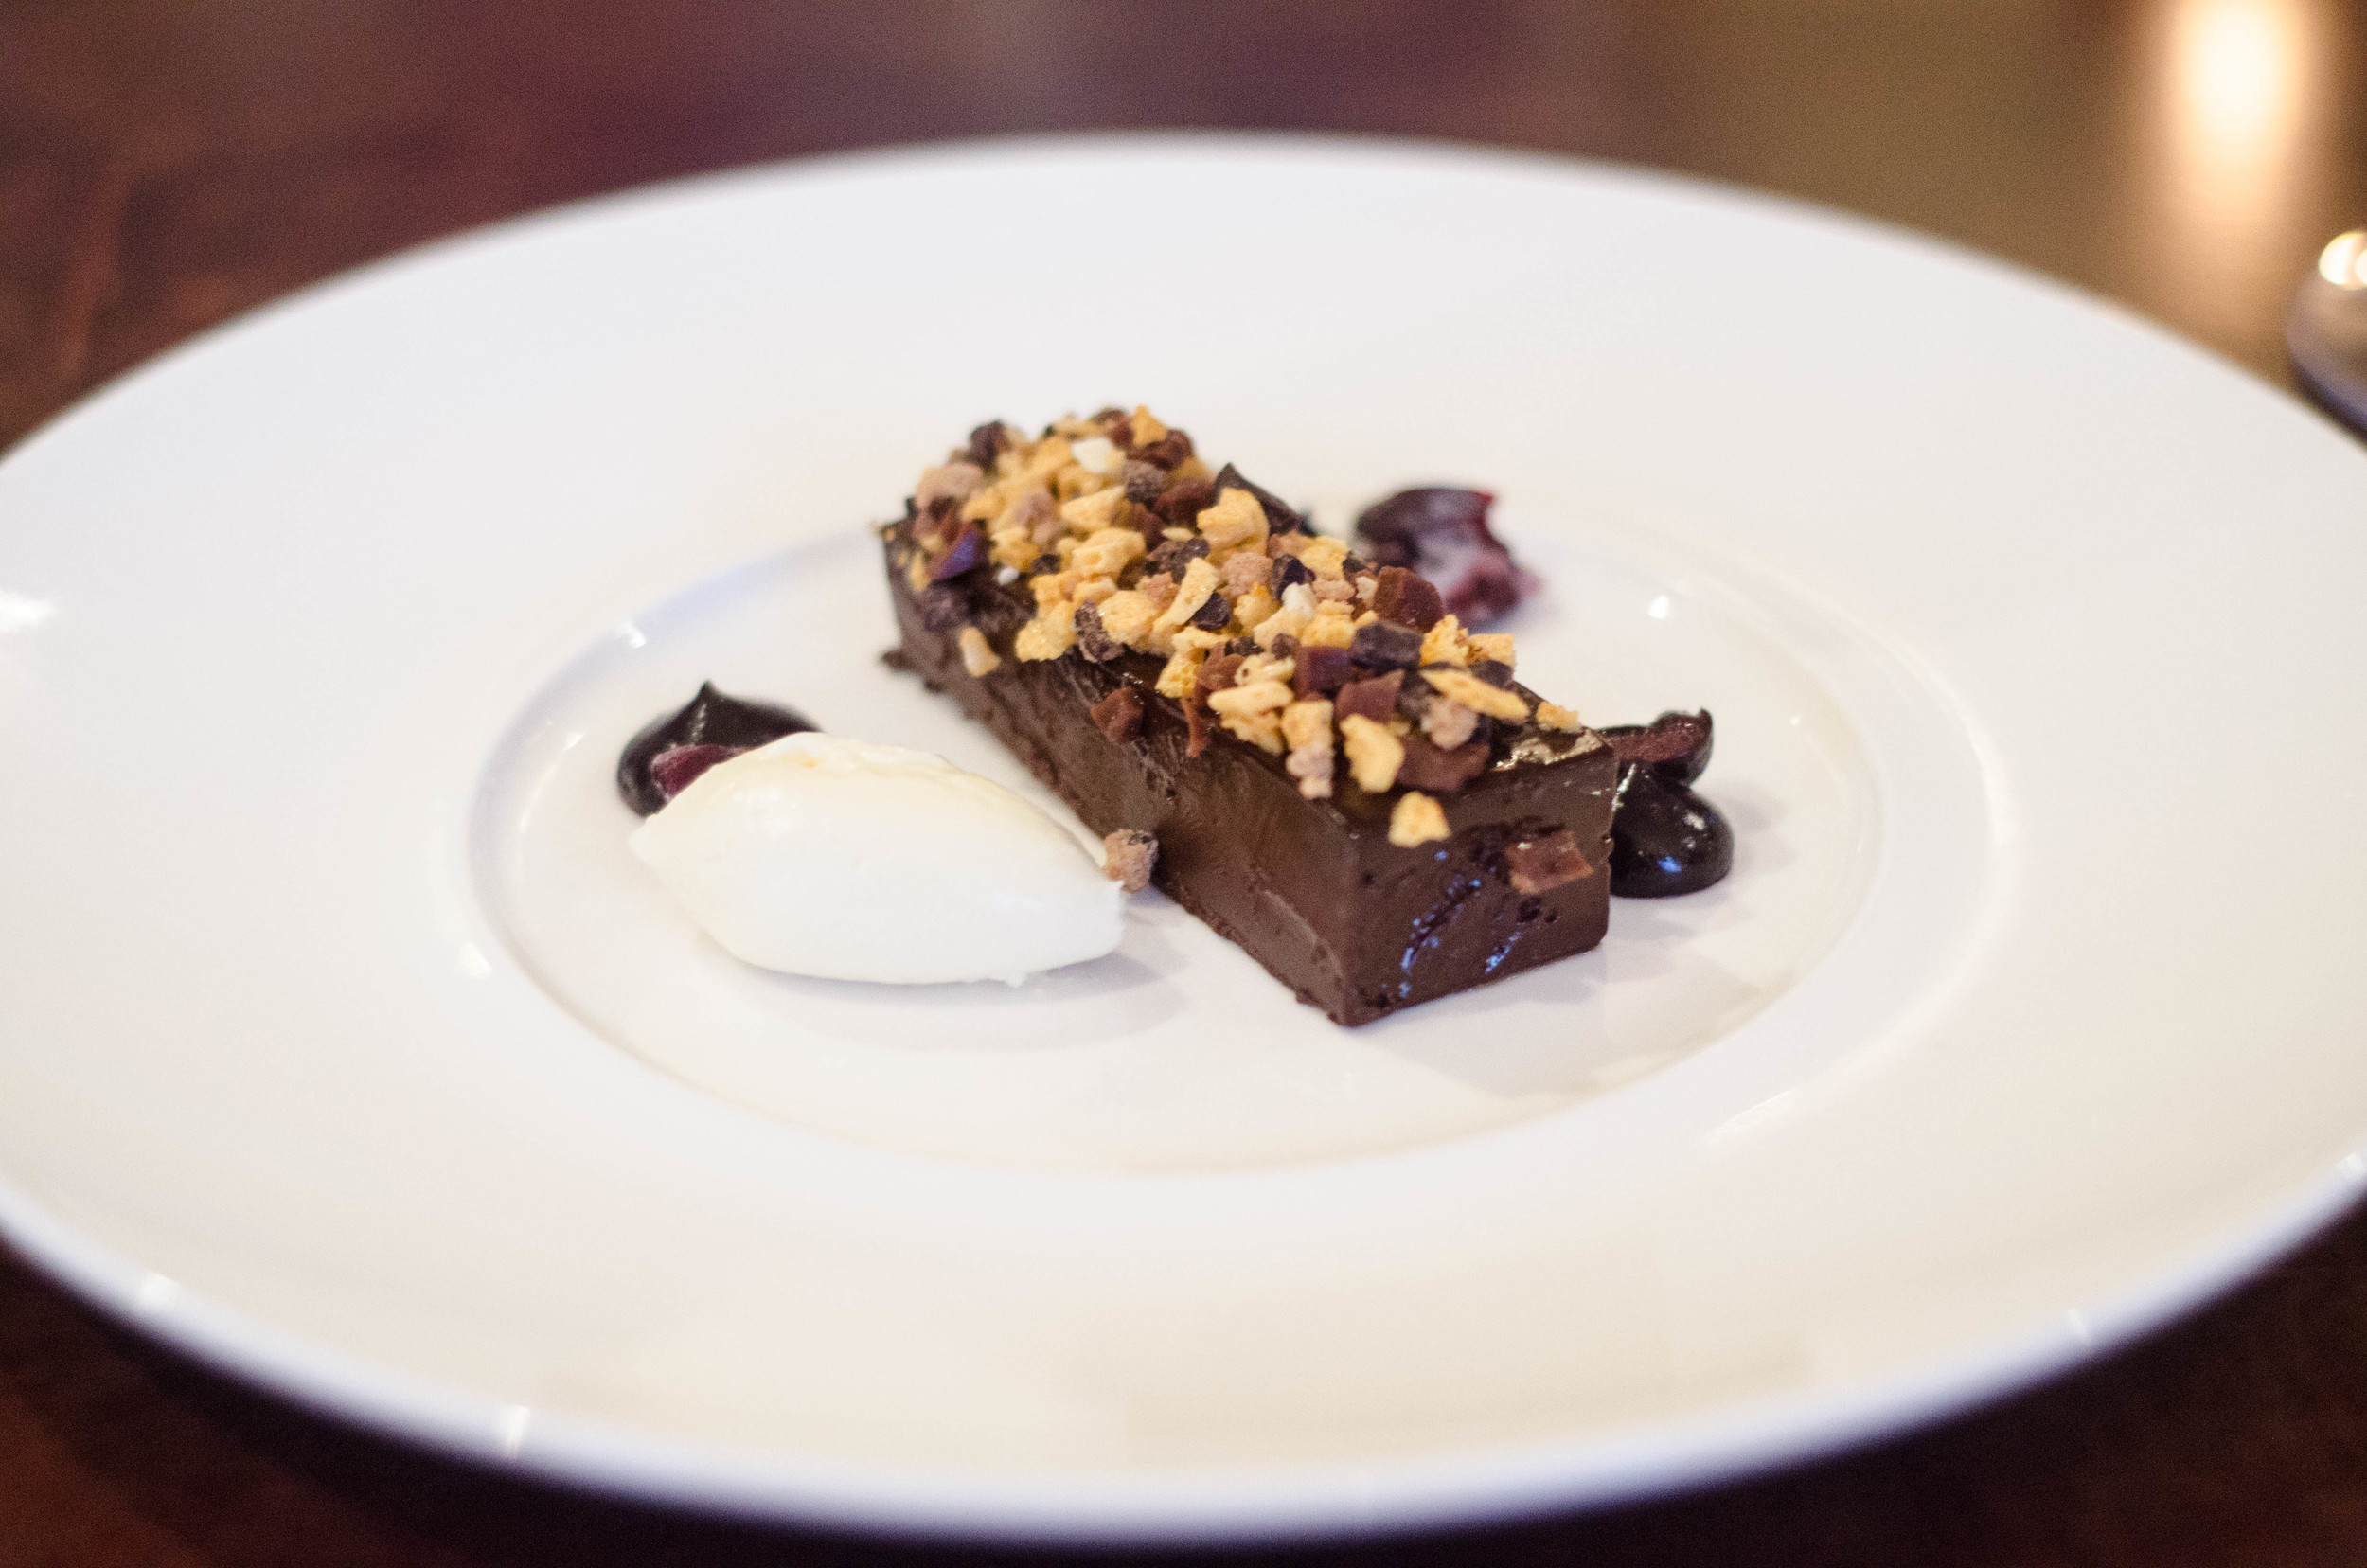 63 Tay Street Chocolate and Olive Oil, Salted Cherry, White Chocolate.jpg